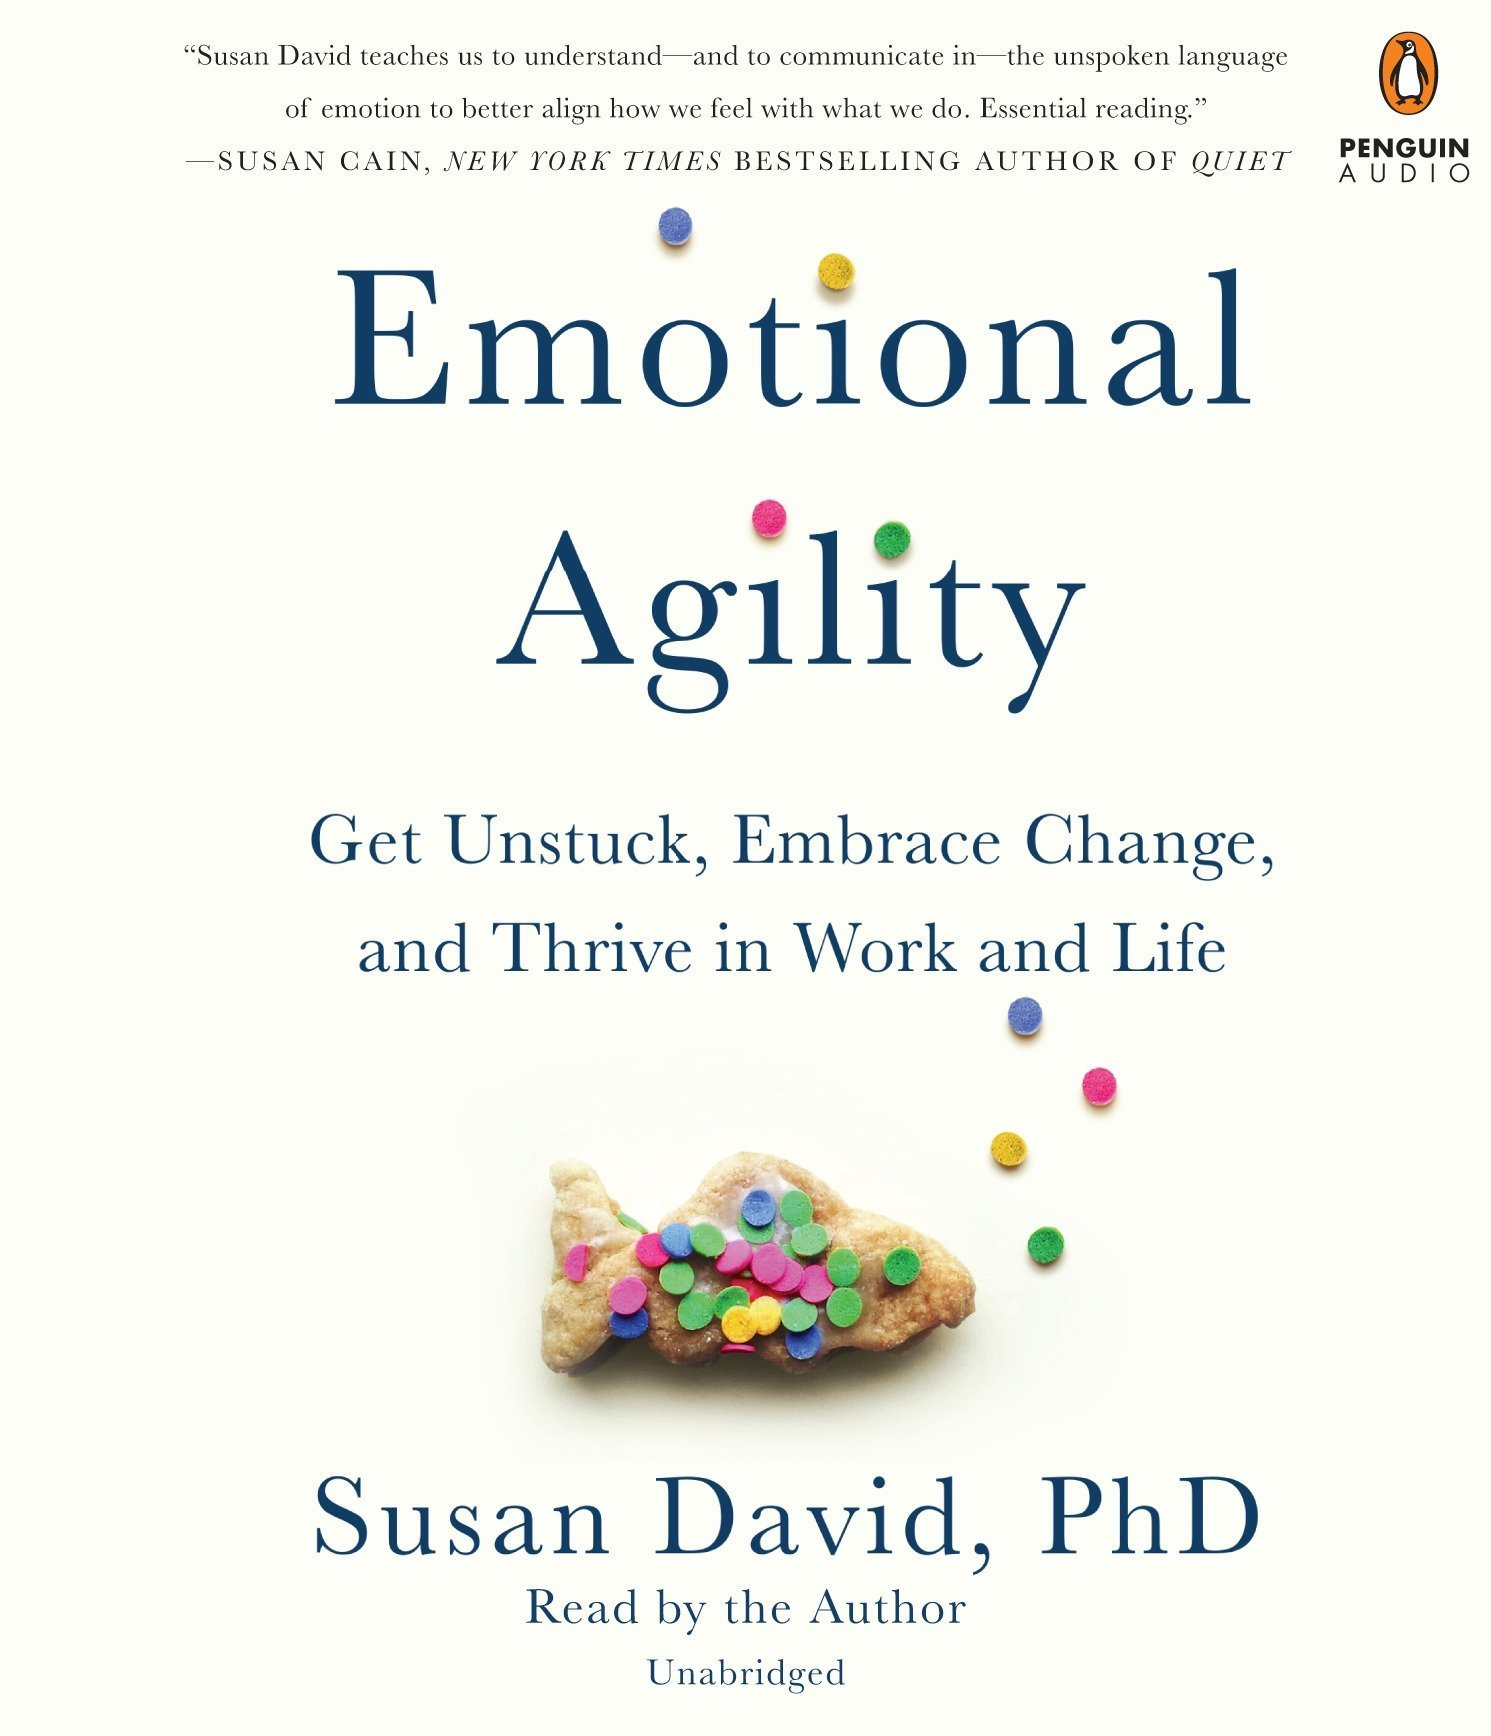 Emotional Agility: Get Unstuck, Embrace Change, and Thrive in Work and  Life: Amazon.co.uk: Susan David: 9780451486608: Books